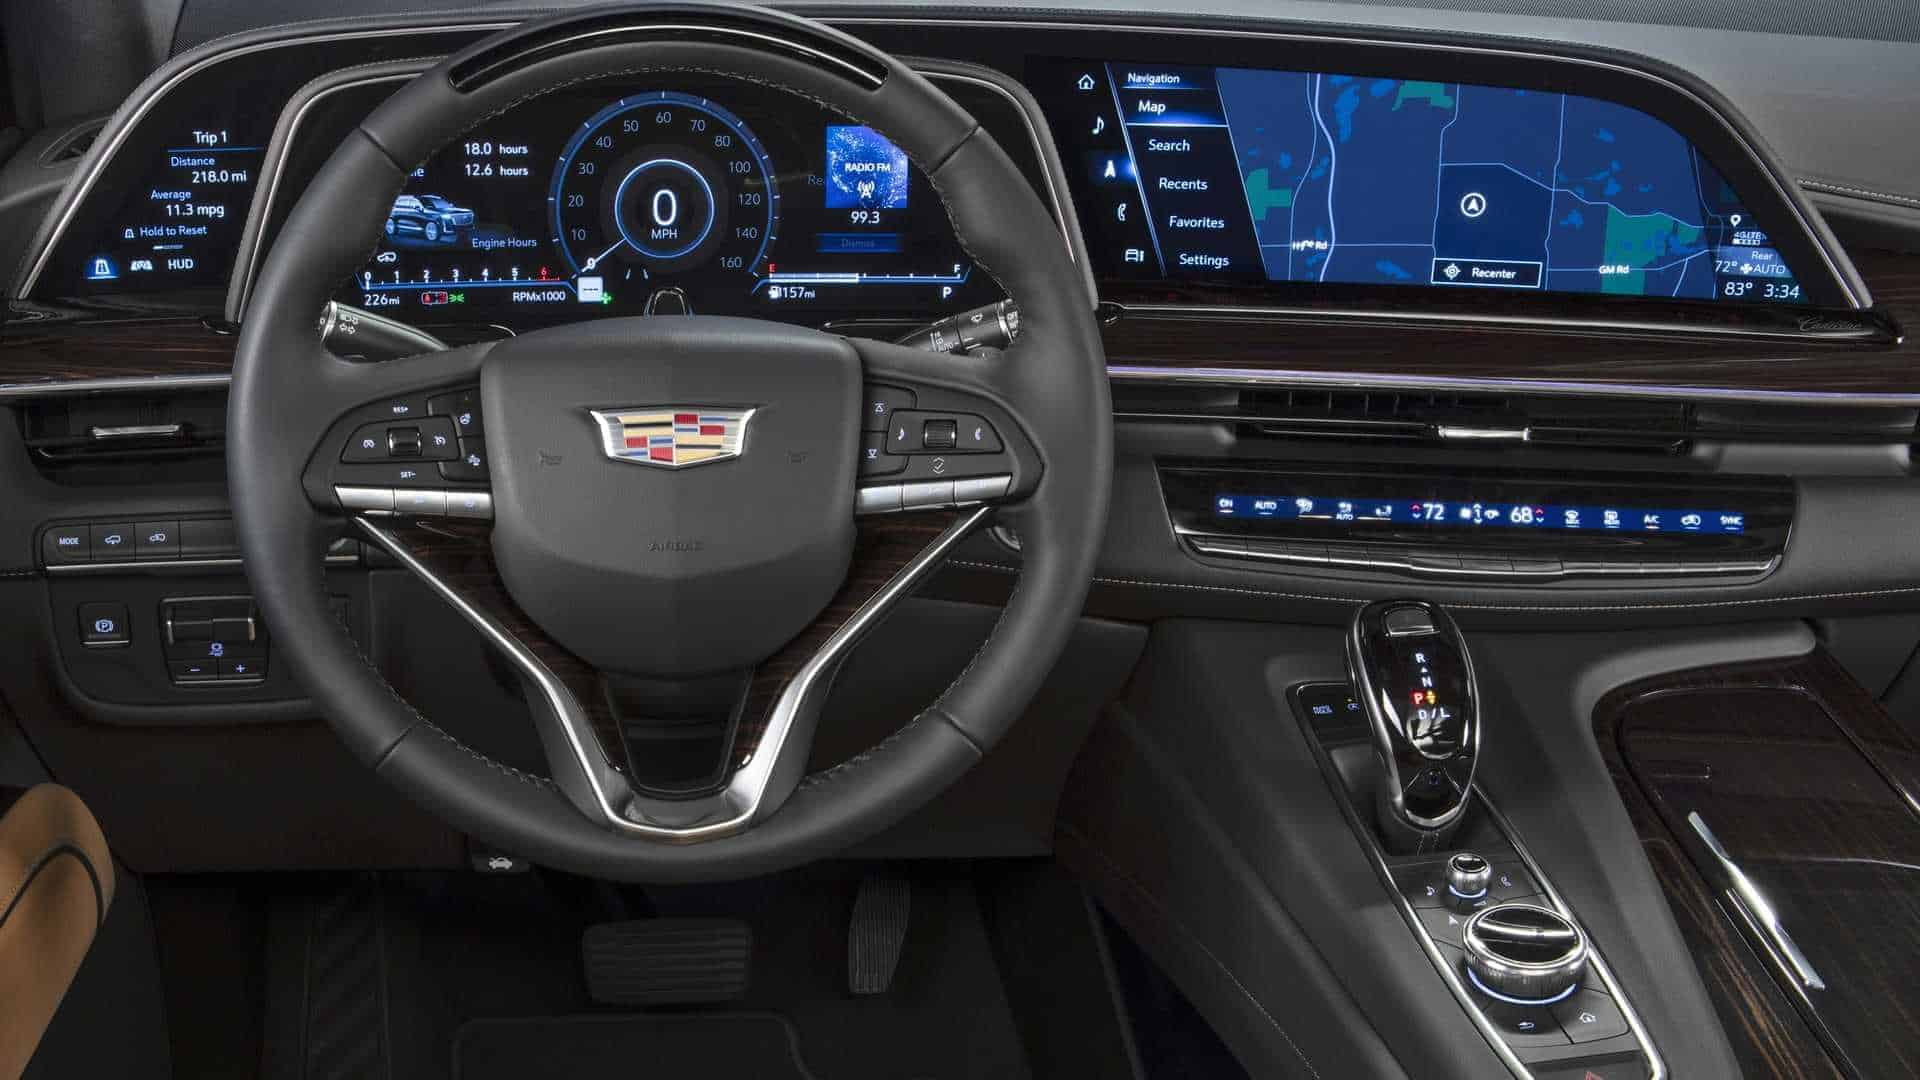 New, 2021 Cadillac Escalade Luxury SUV cockpit